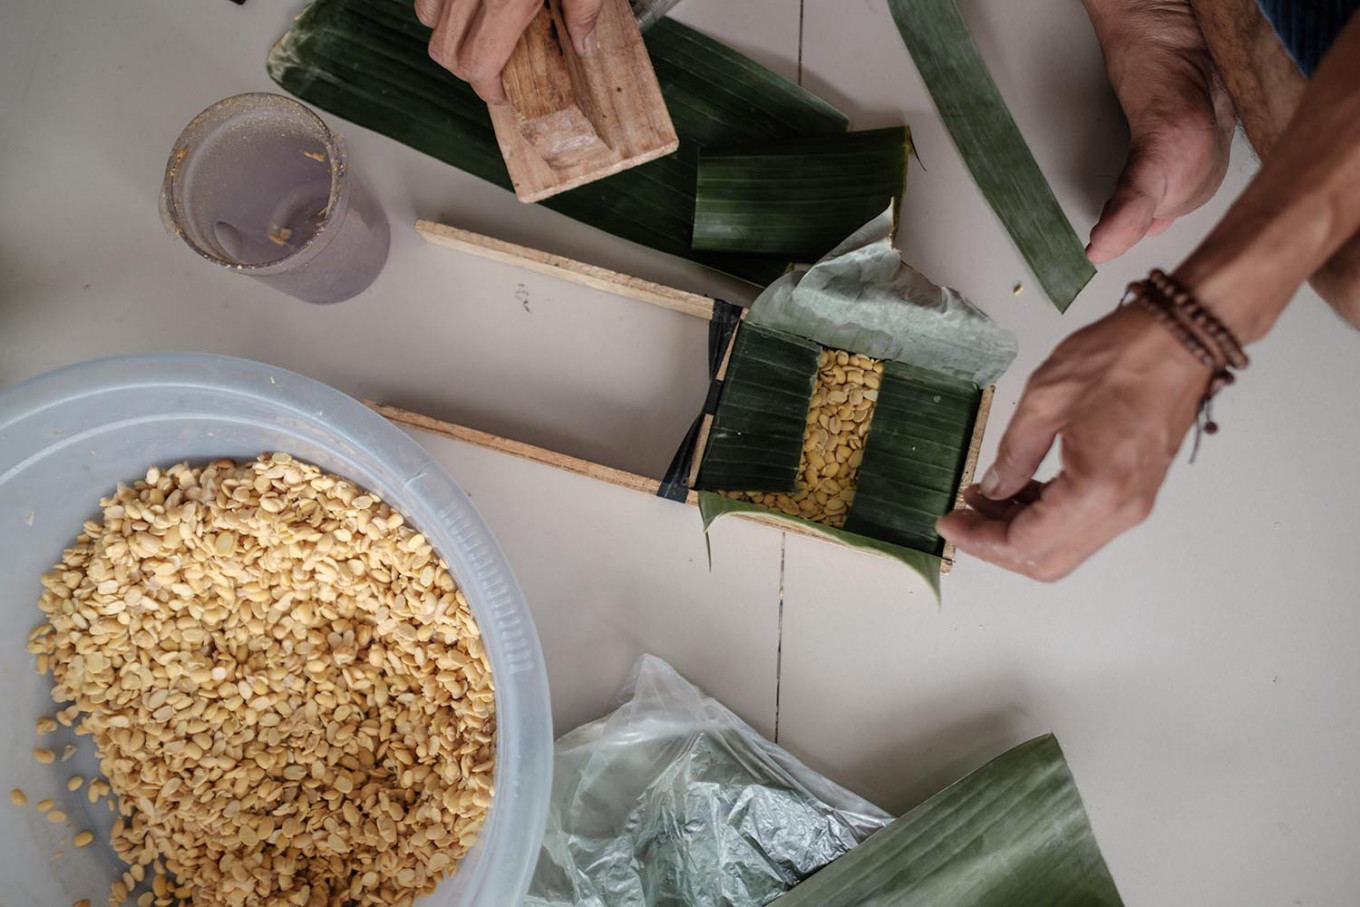 Hakim also provides traditional, environmentally friendly packaging by wrapping the tempeh in banana leaves. JP/ Anggara Mahendra